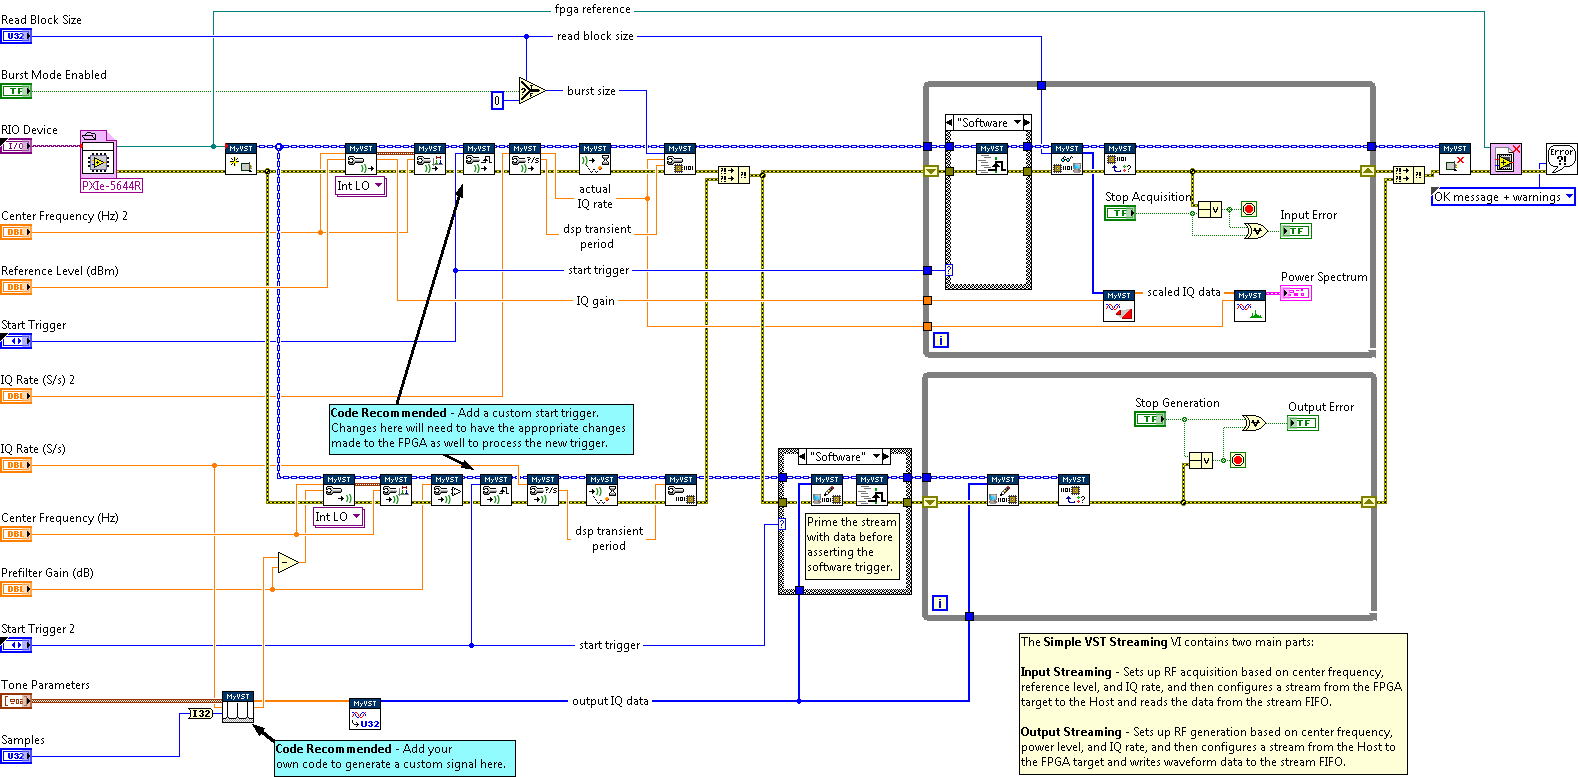 An Introduction To Instrument Design Libraries For Ni Software Wiring Diagram Designer Furthermore Electrical The Vst Streaming Sample Project Host Interface Features A Register Bus Based Session Wire Both Acquisition And Generation Subvis